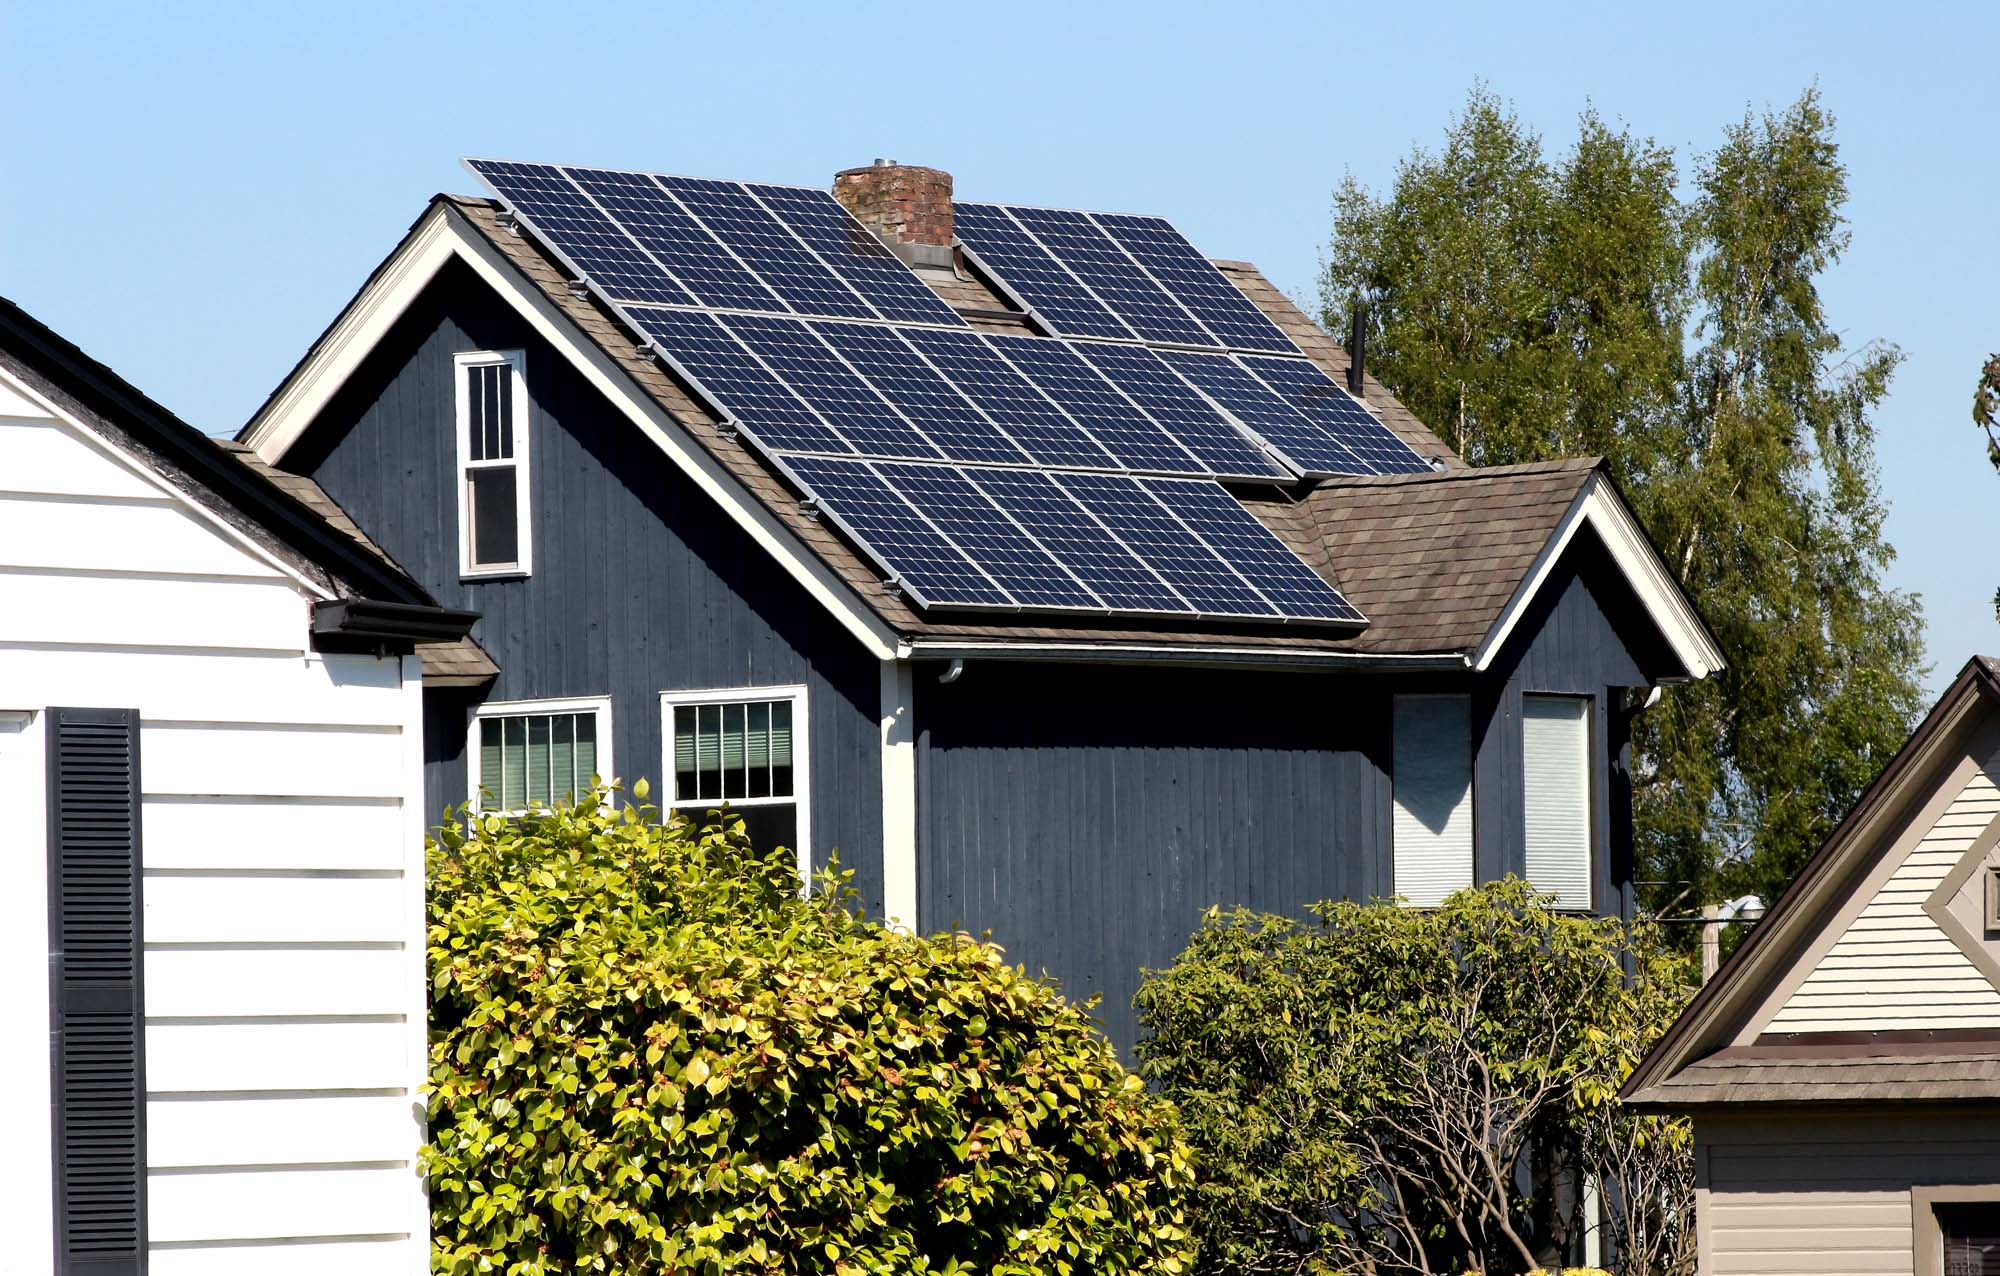 California Becomes First State To Mandate Solar On New